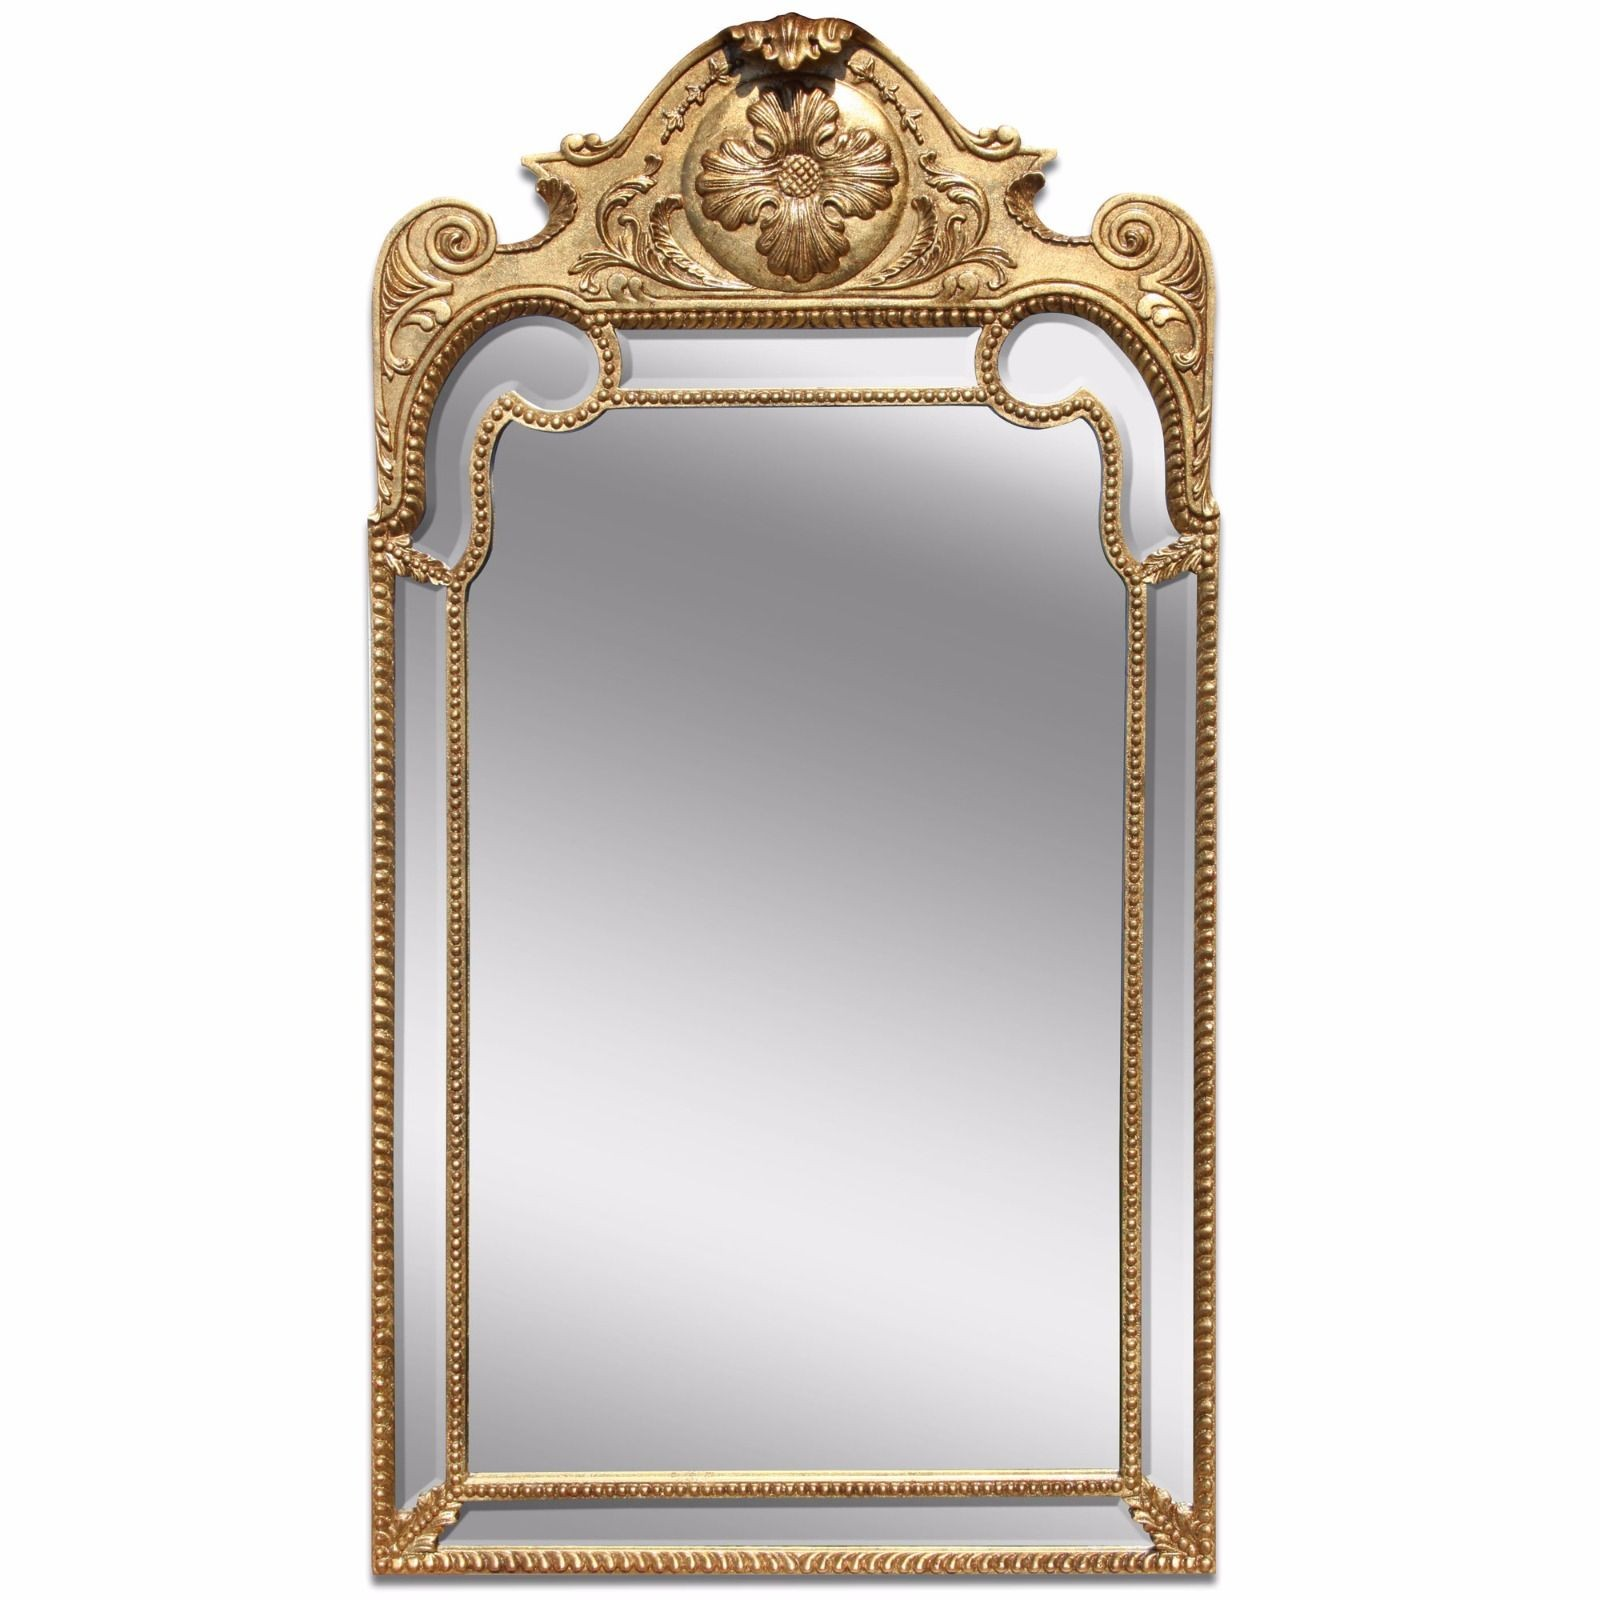 Queen Anne style giltwood mirror